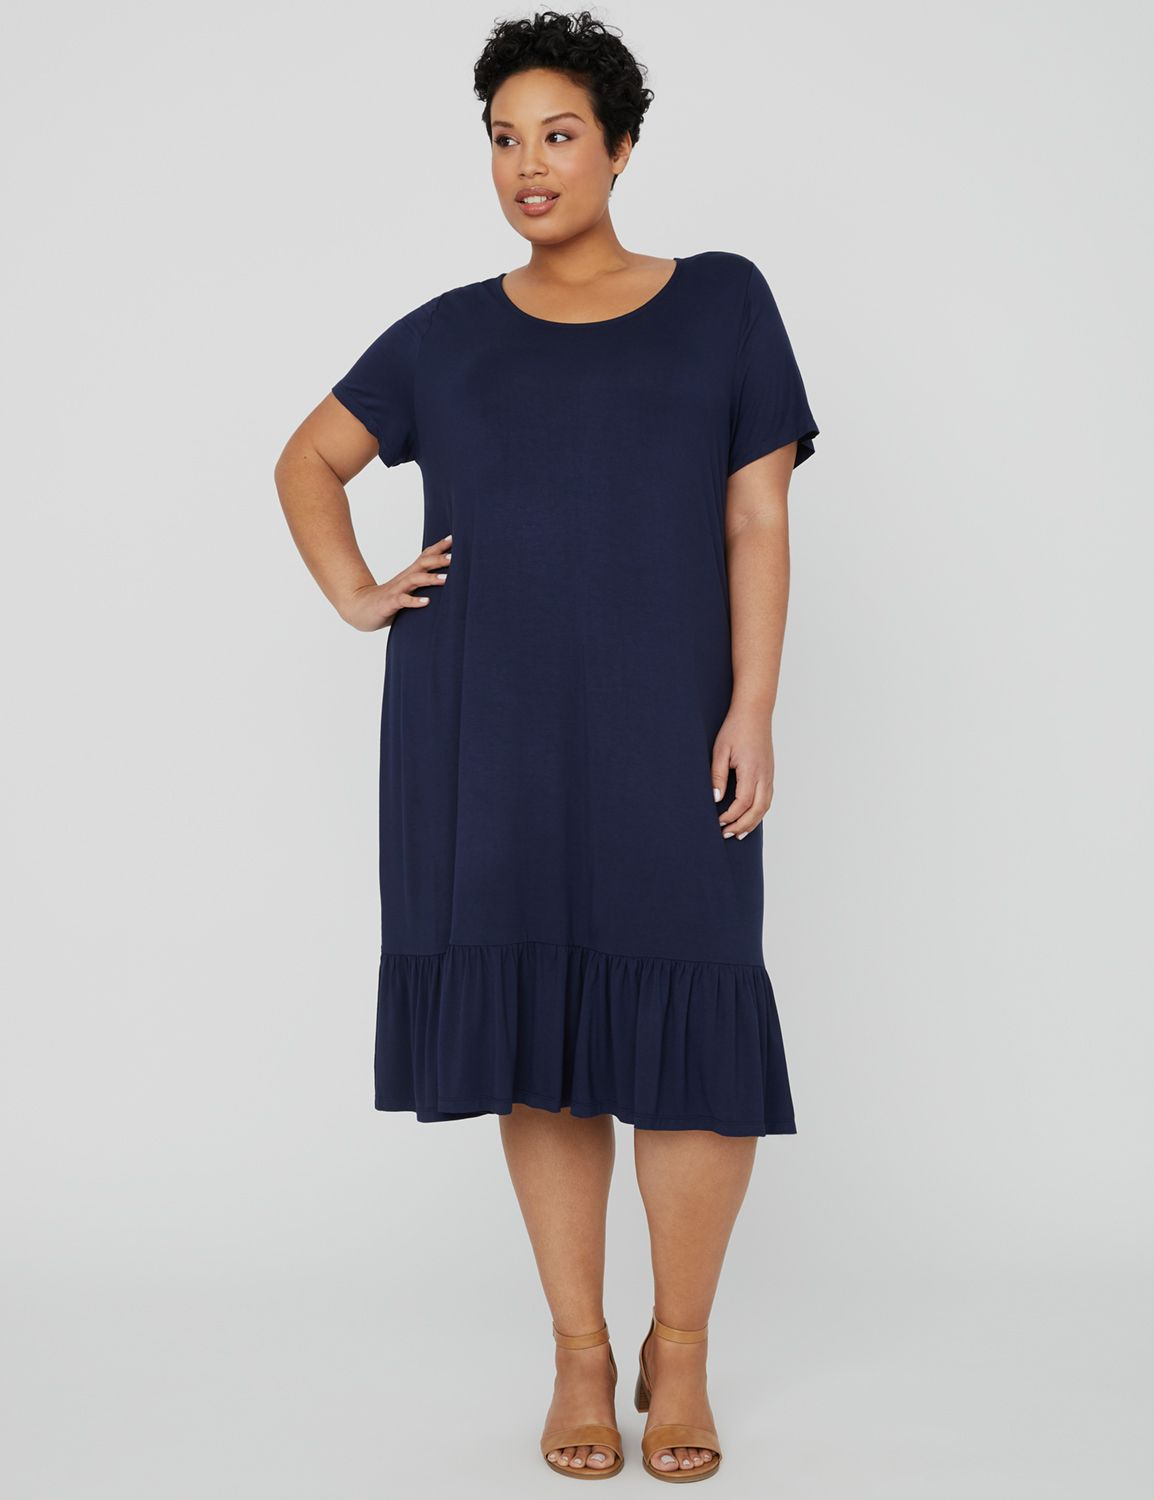 Exhale T-Shirt A-Line Dress 1090955 T-shirt Dress with Flounce MP-300102407